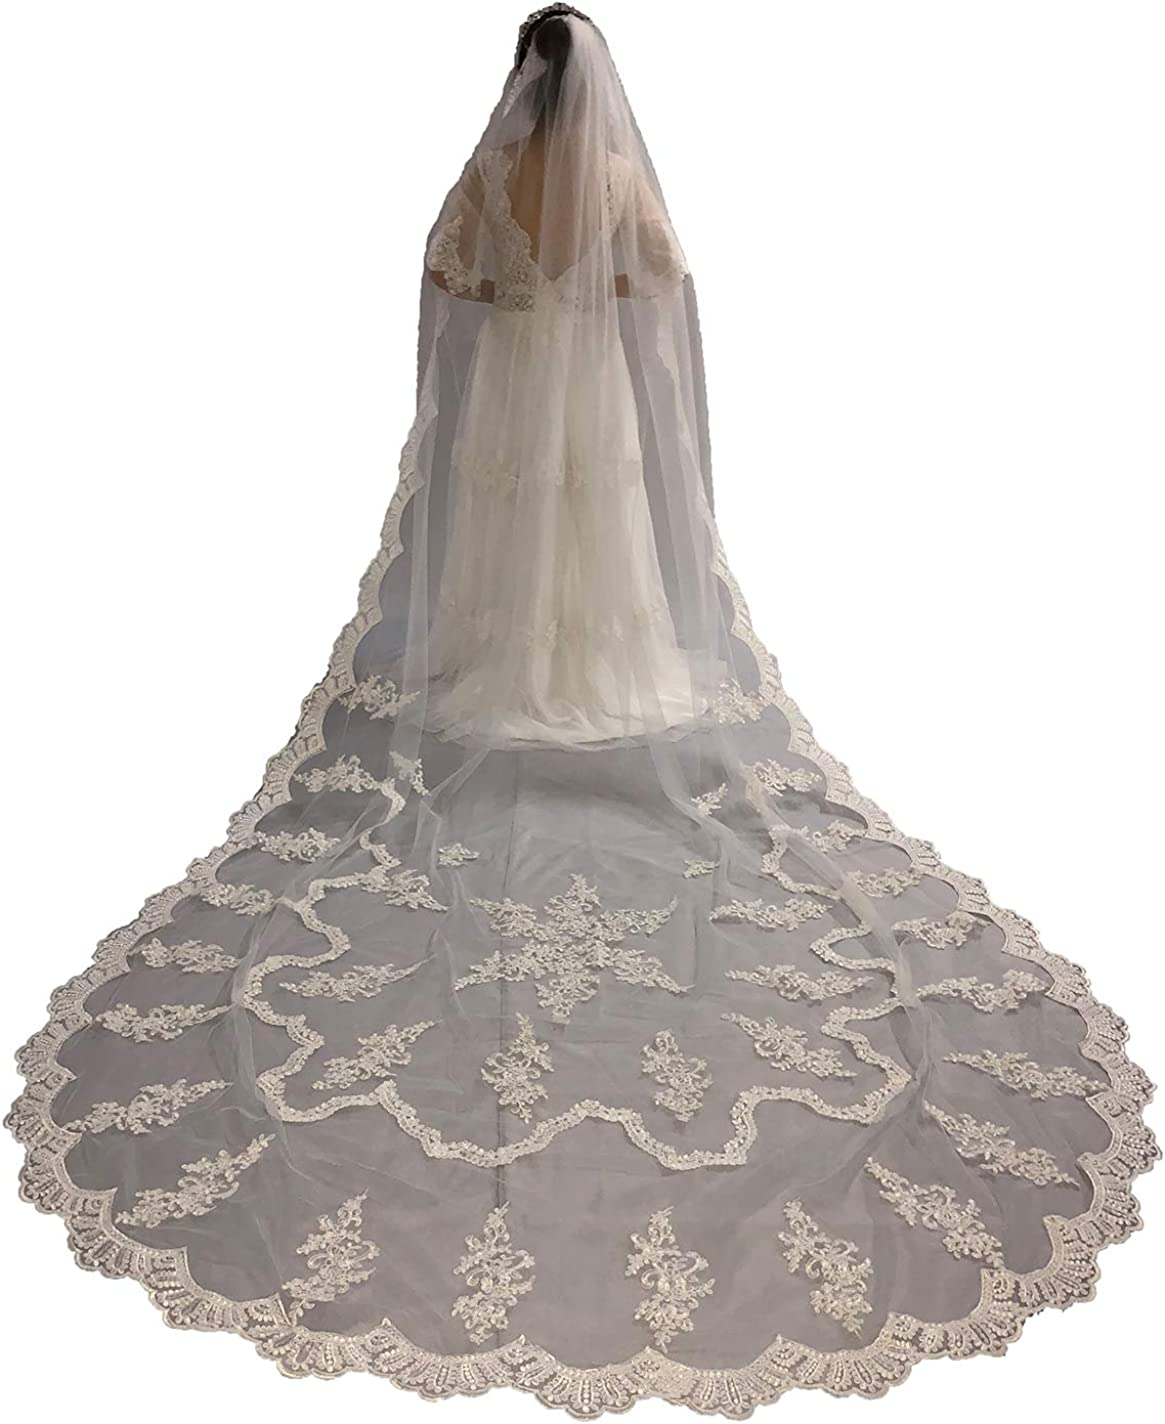 Faiokaver Wedding Veils White Ivory Cathedral 1 Tier Lace Appliques with Comb